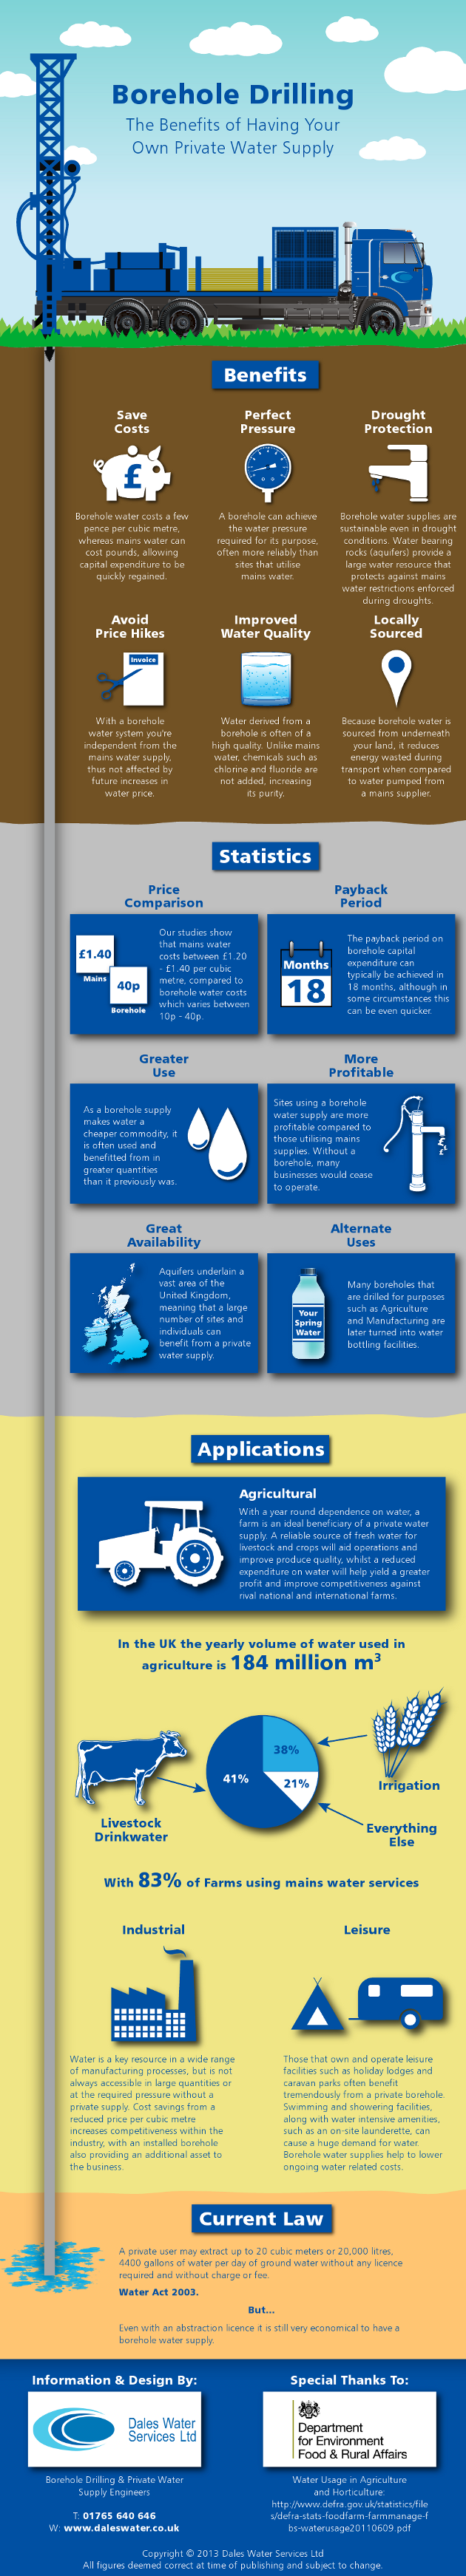 Borehole Water Supply 101-Infographic